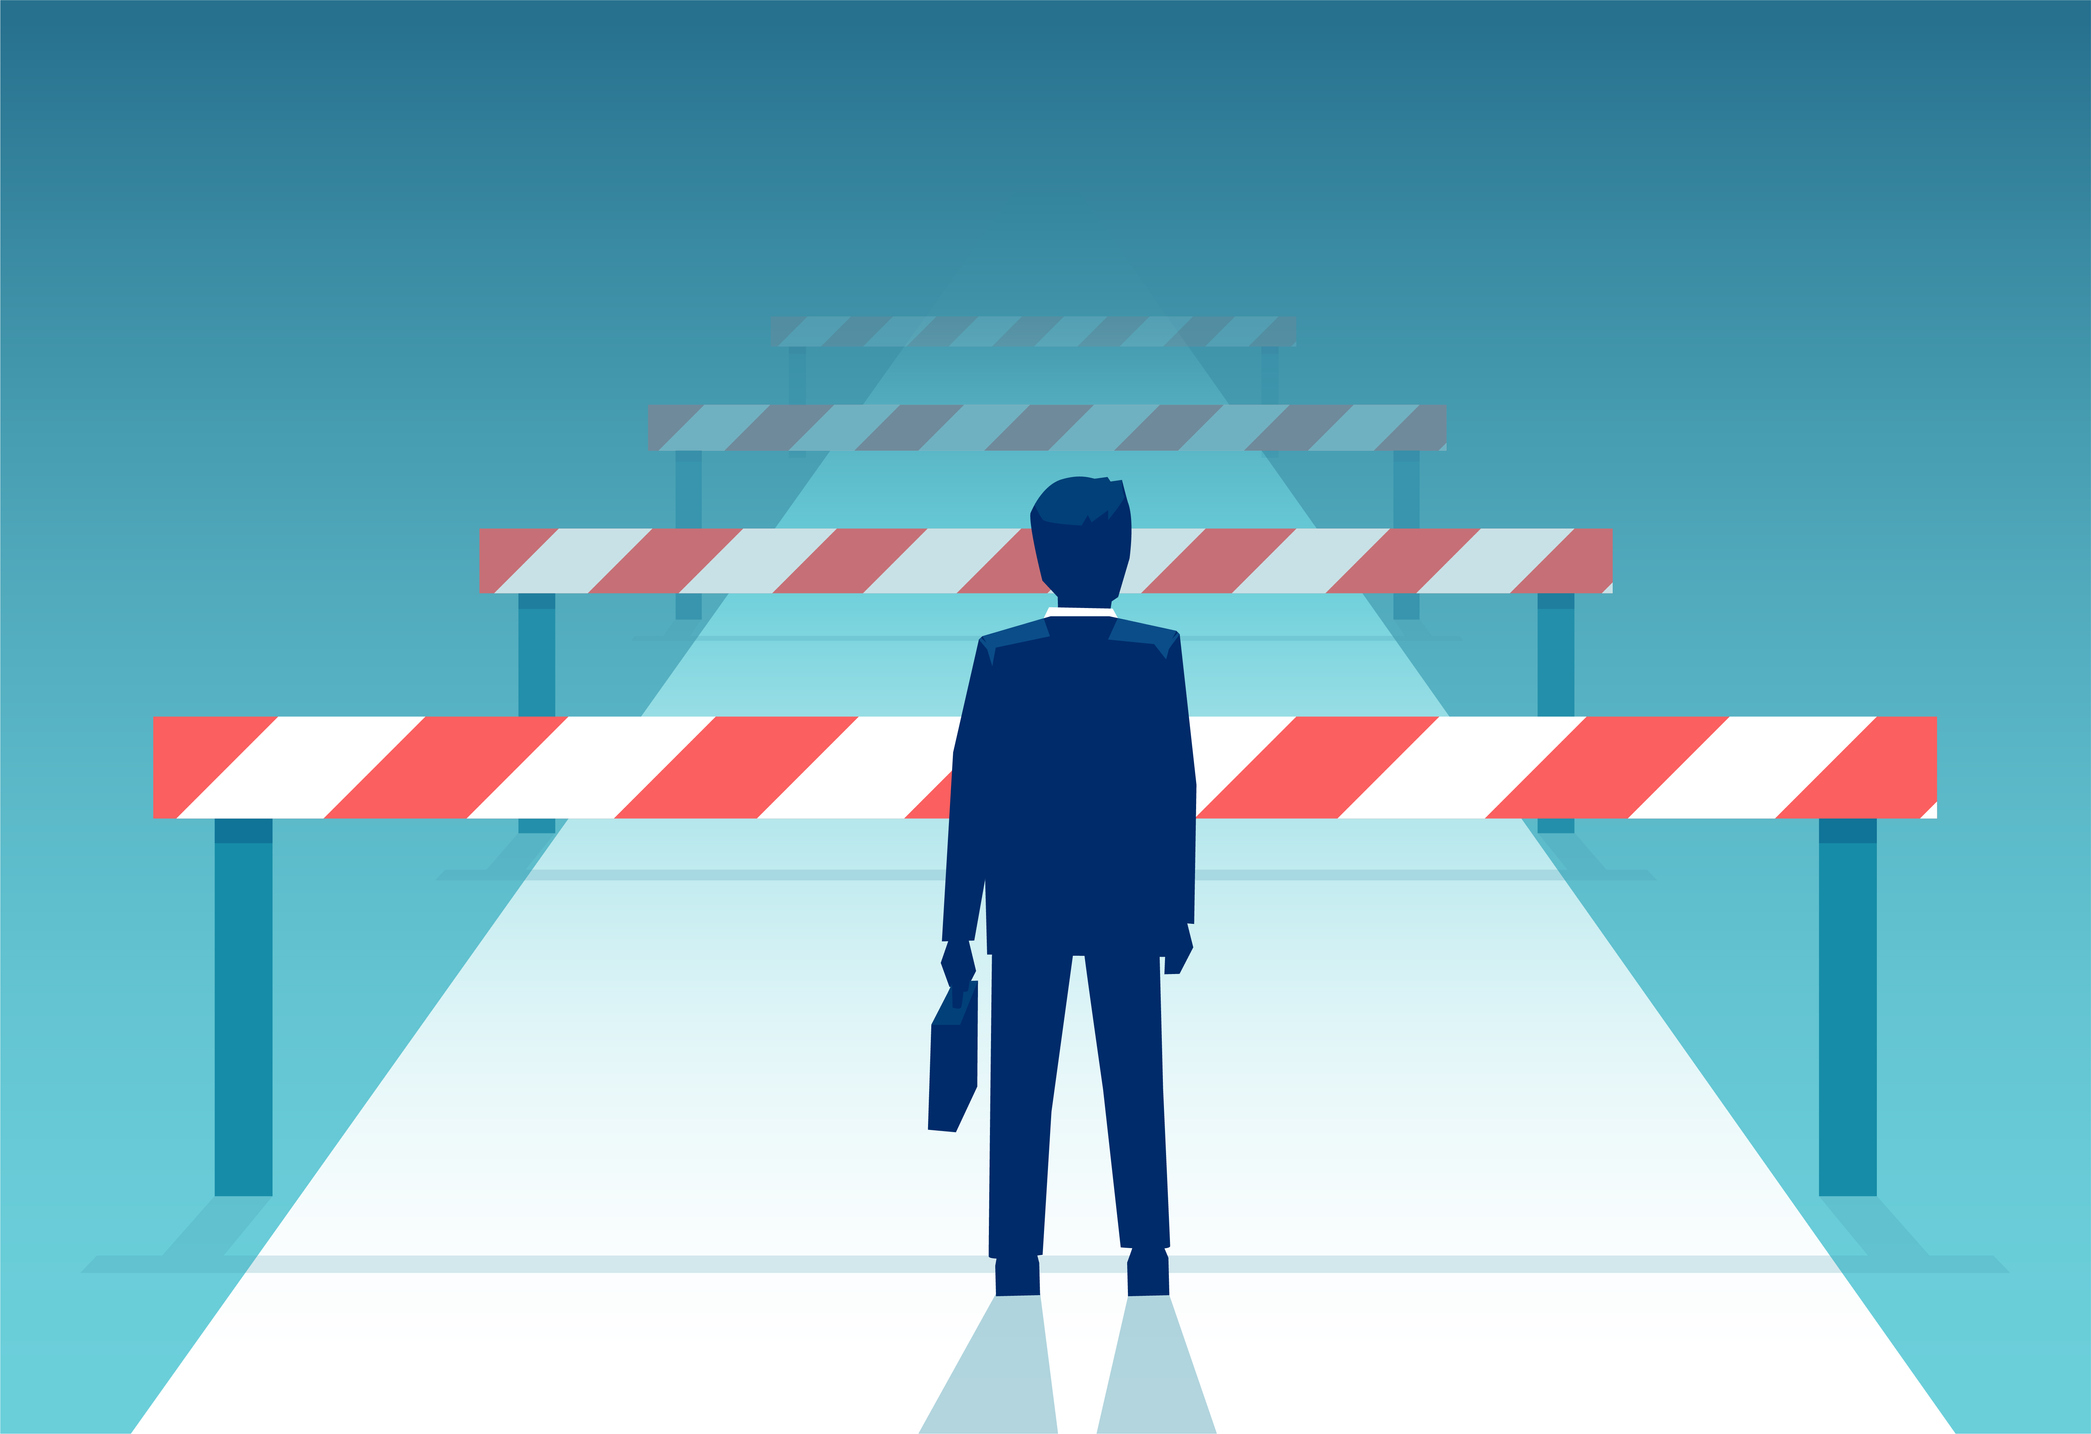 Vector of a challenged businessman standing in front of many obstacles and barriers on the way to success. Image credit: Feodora Chiosea, iStock